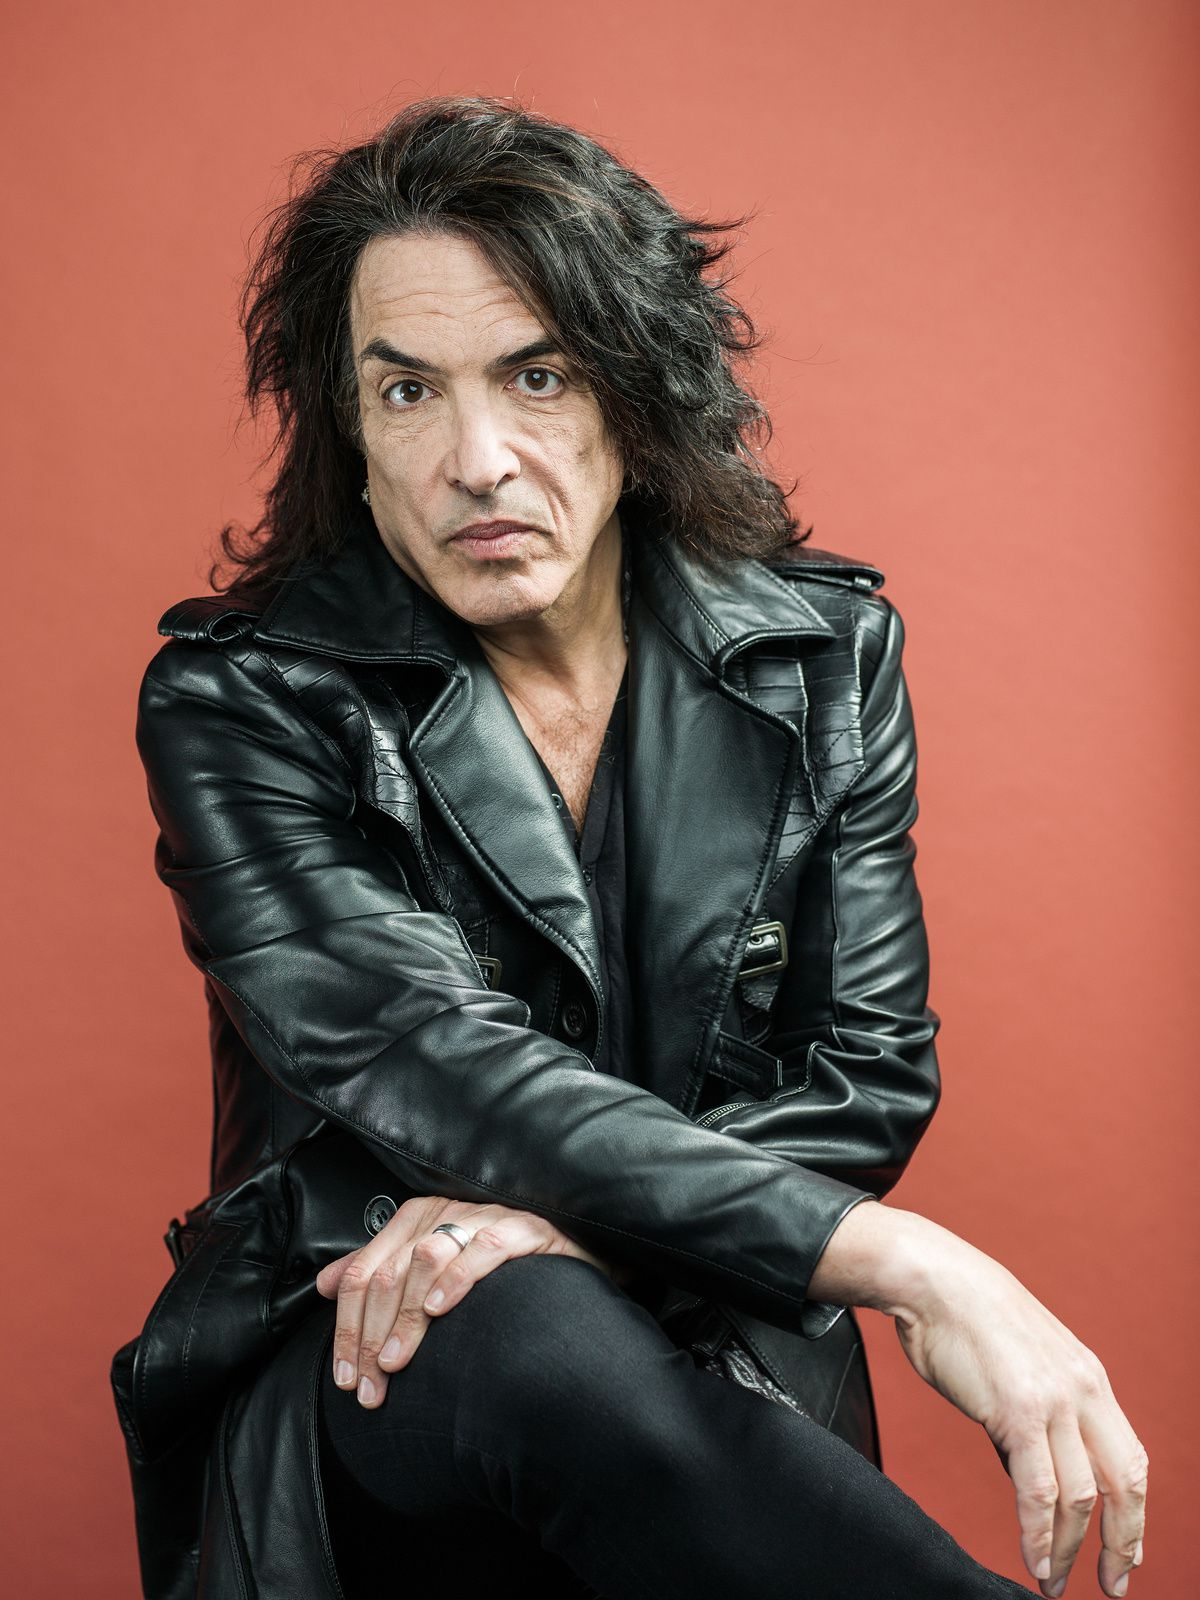 Paul Stanley - Kiss - portrait session